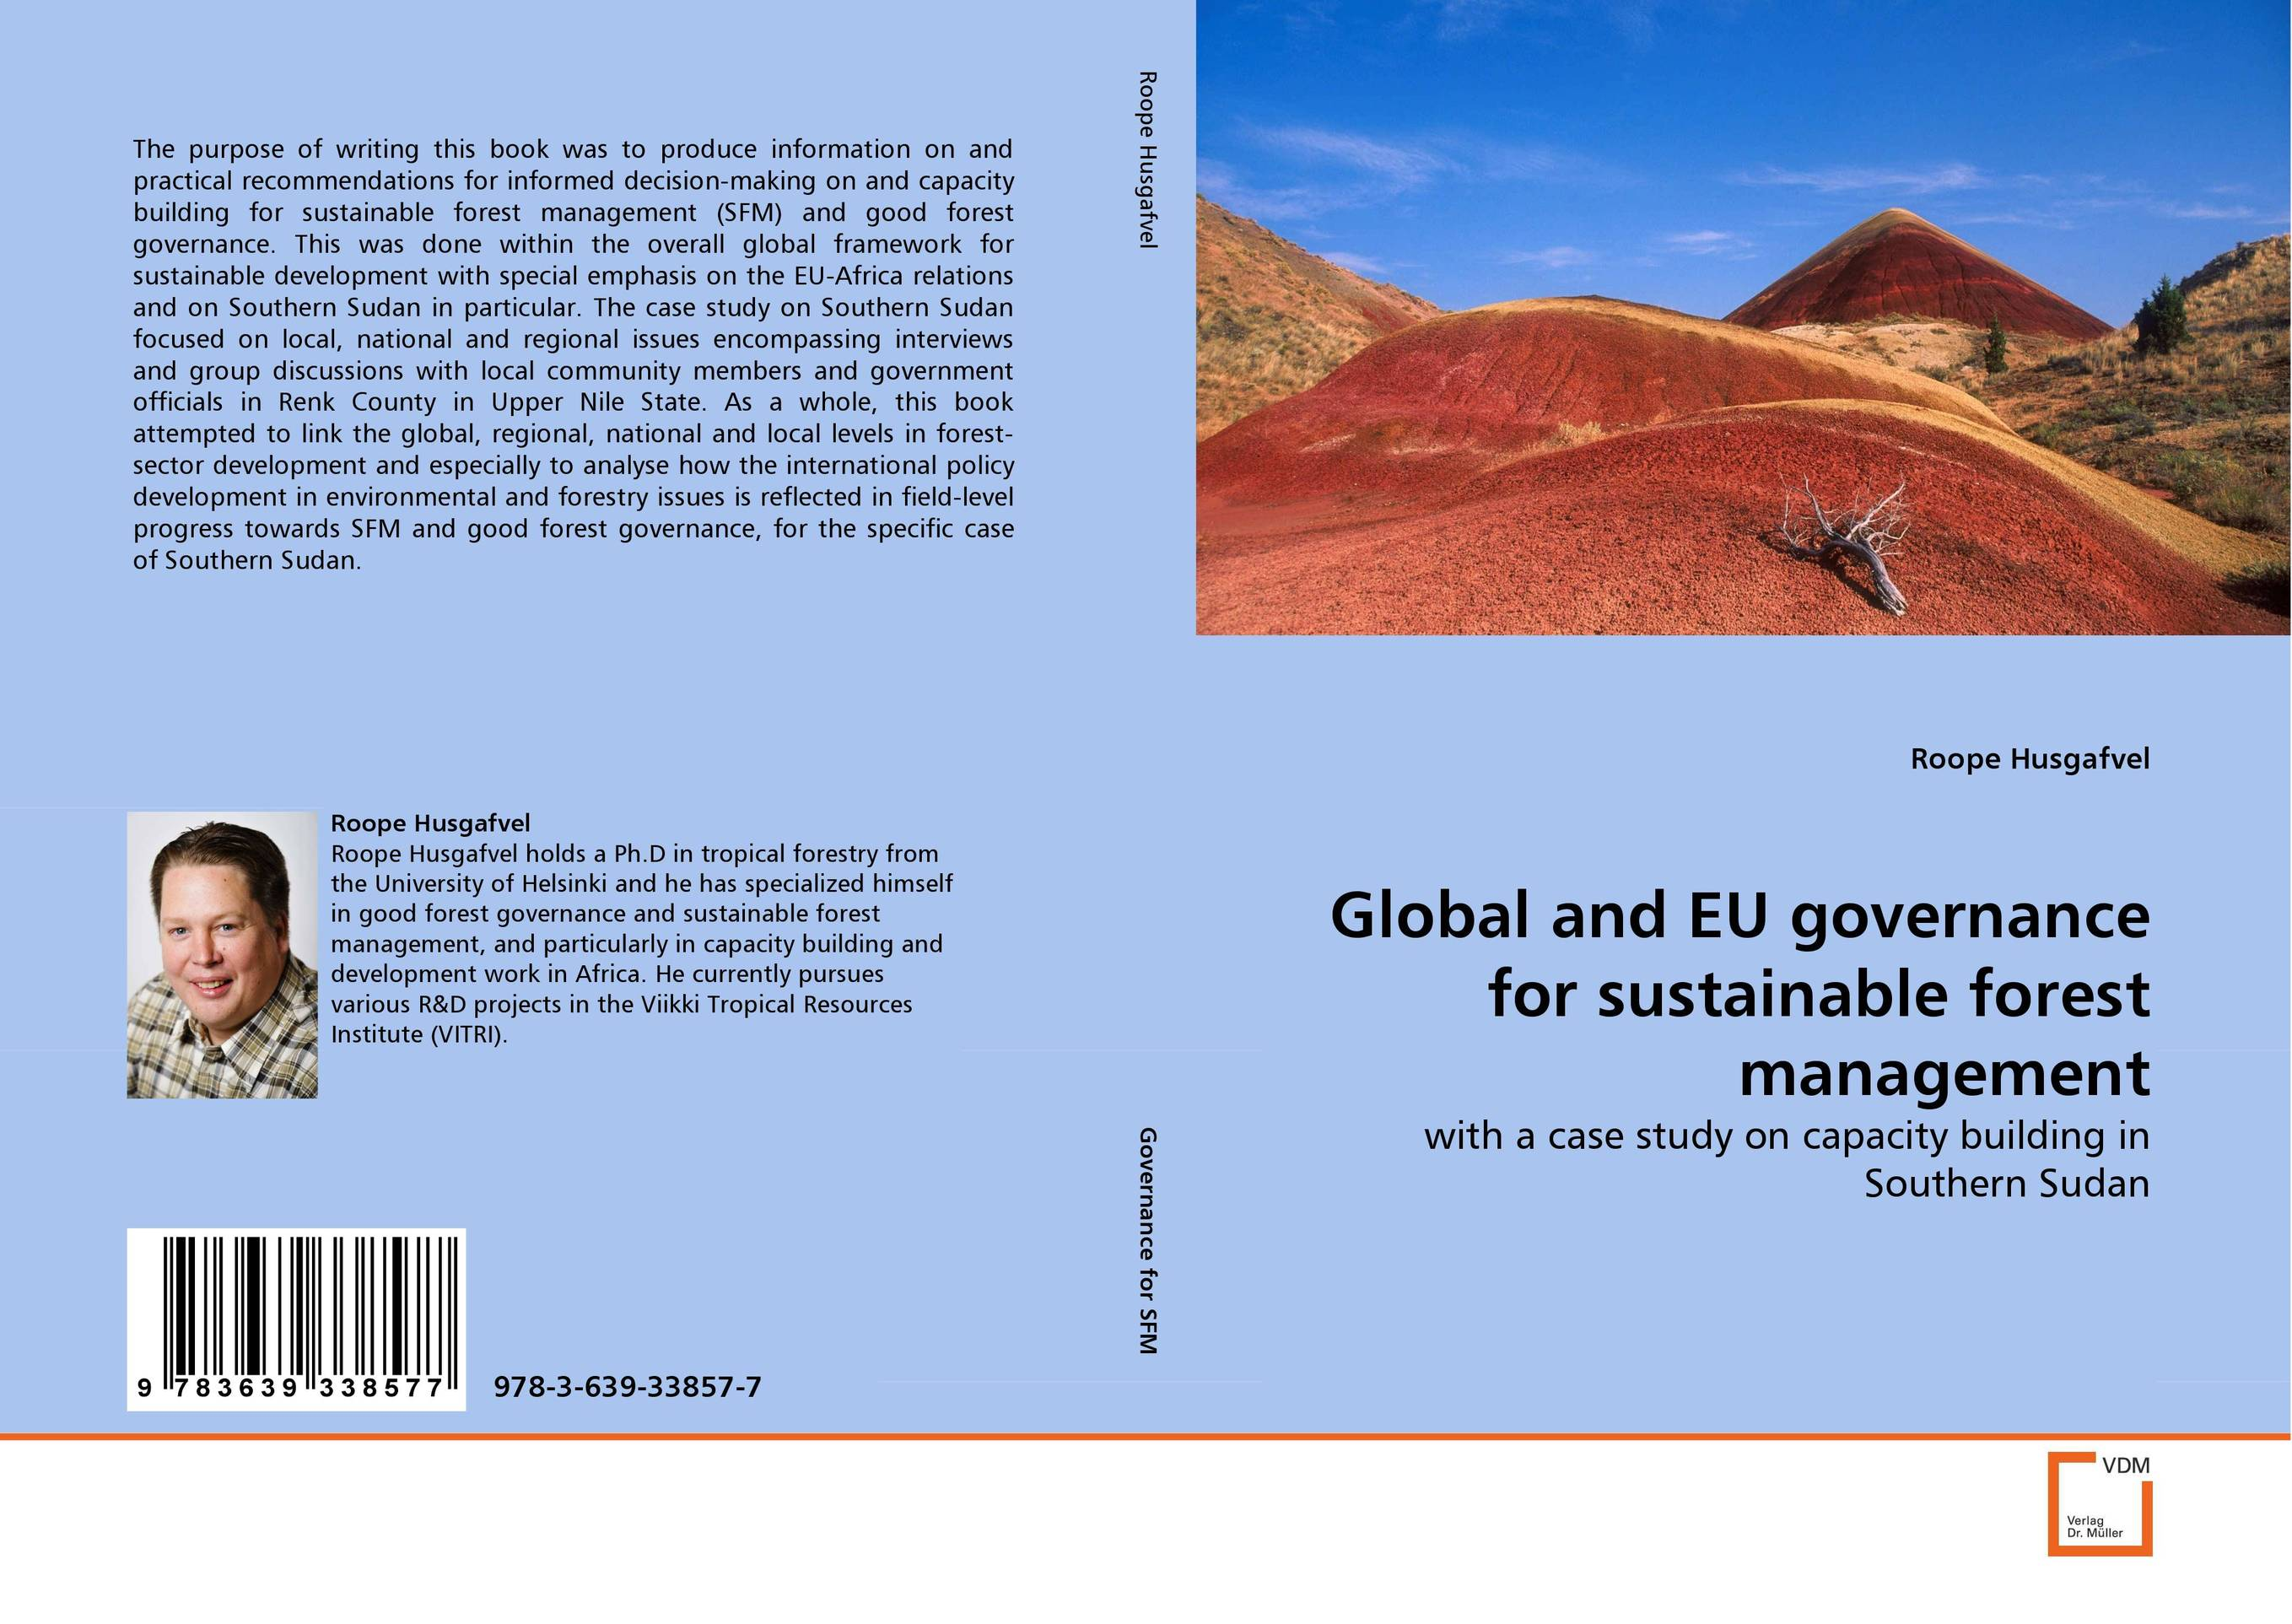 Global and EU governance for sustainable forest management remaking management between global and local